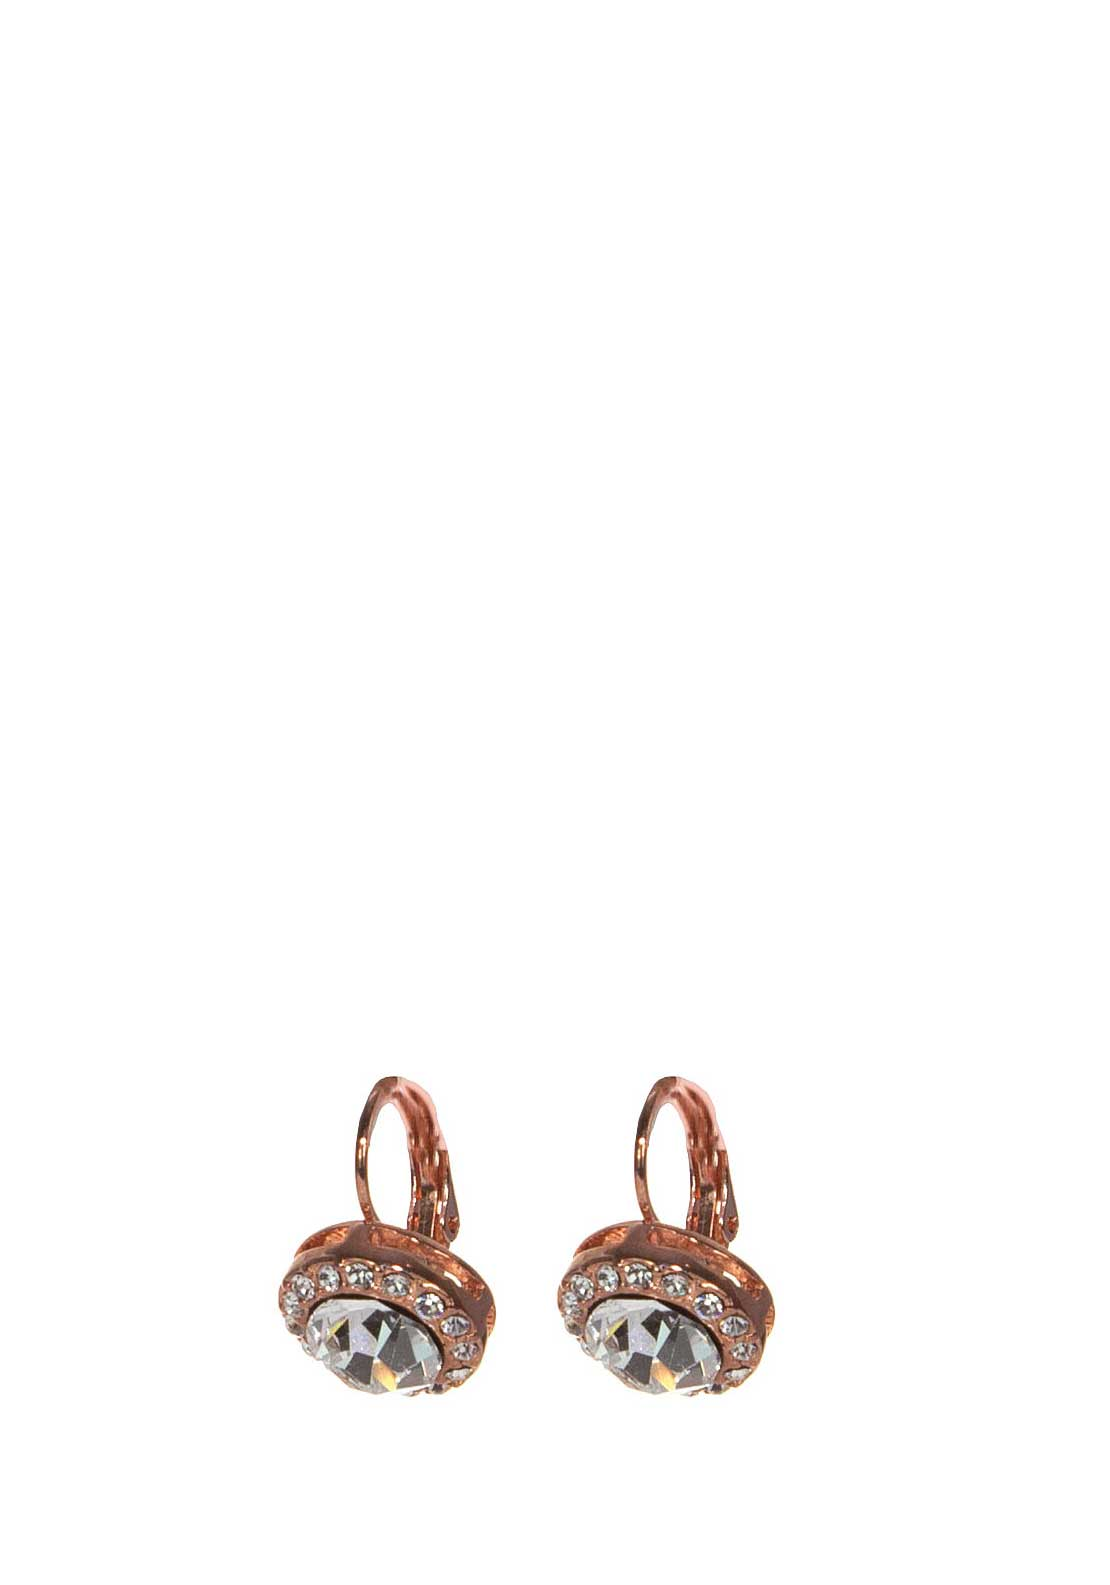 Absolute Jewellery Crystal Halo Earrings, Rose Gold